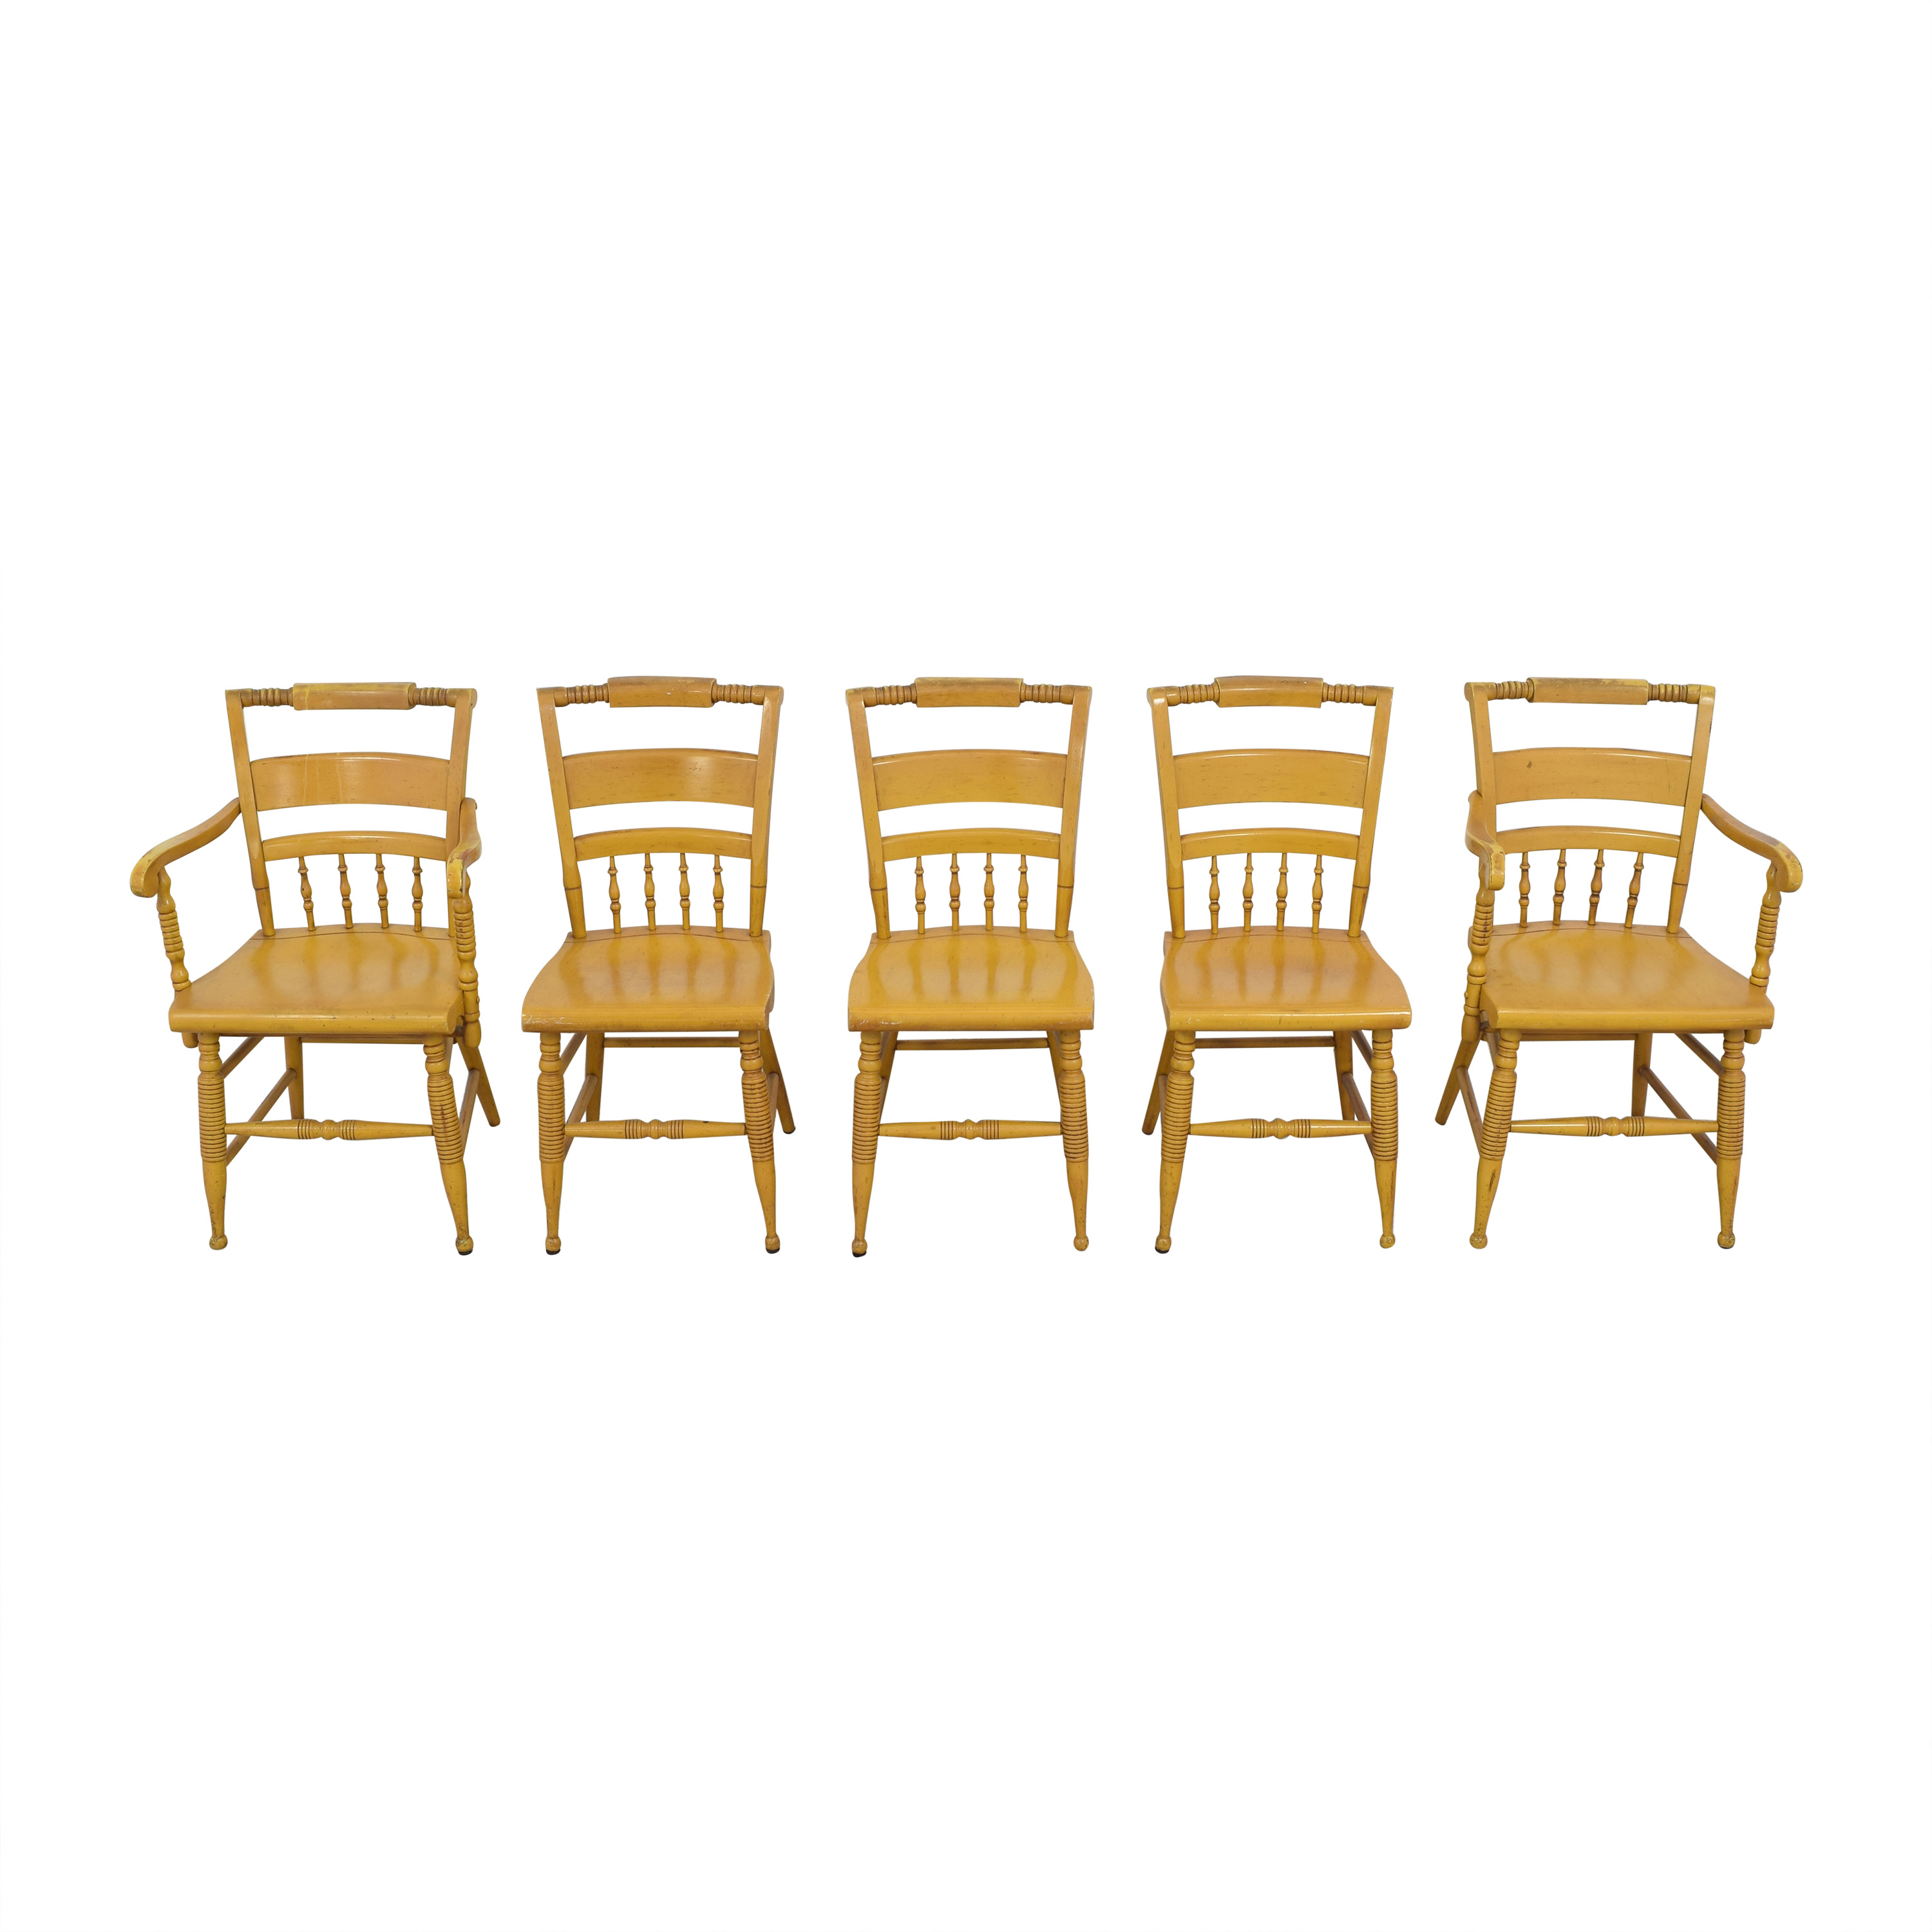 Nichols & Stone Vintage Dinner Chairs / Chairs